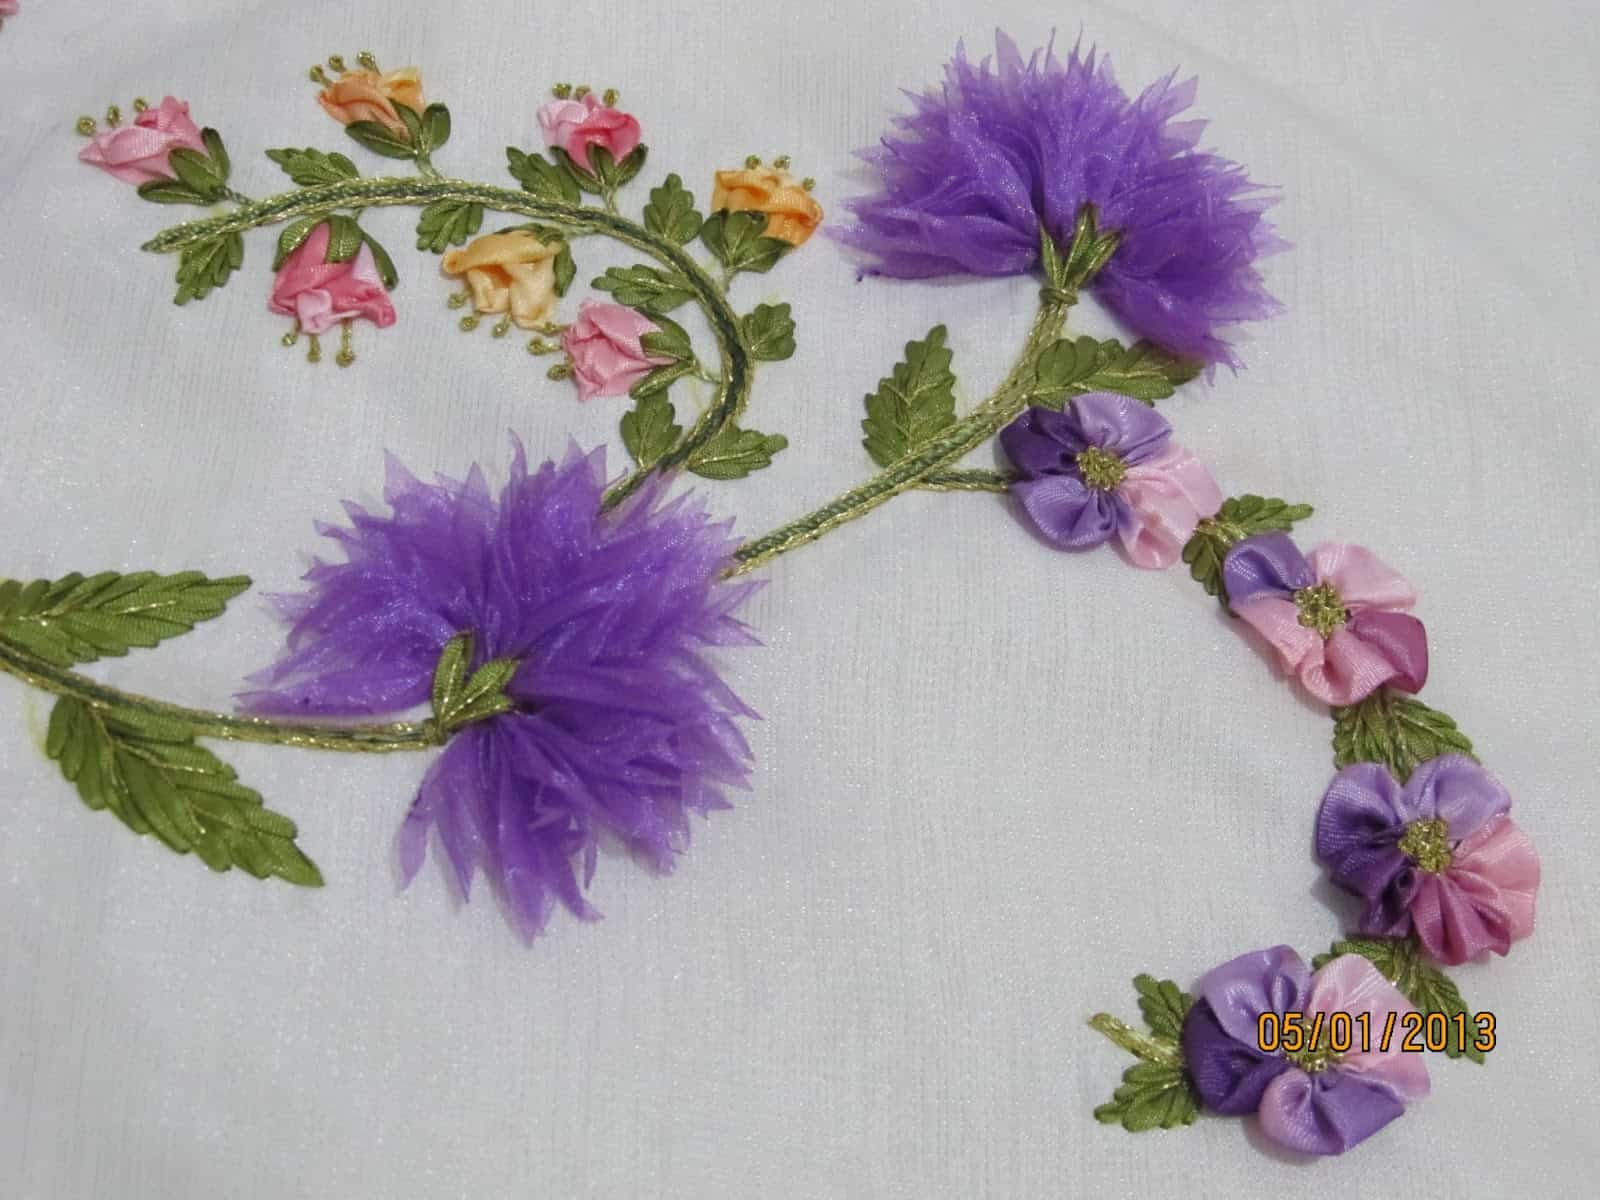 Ribbon embroidered flowers with chiffon petals